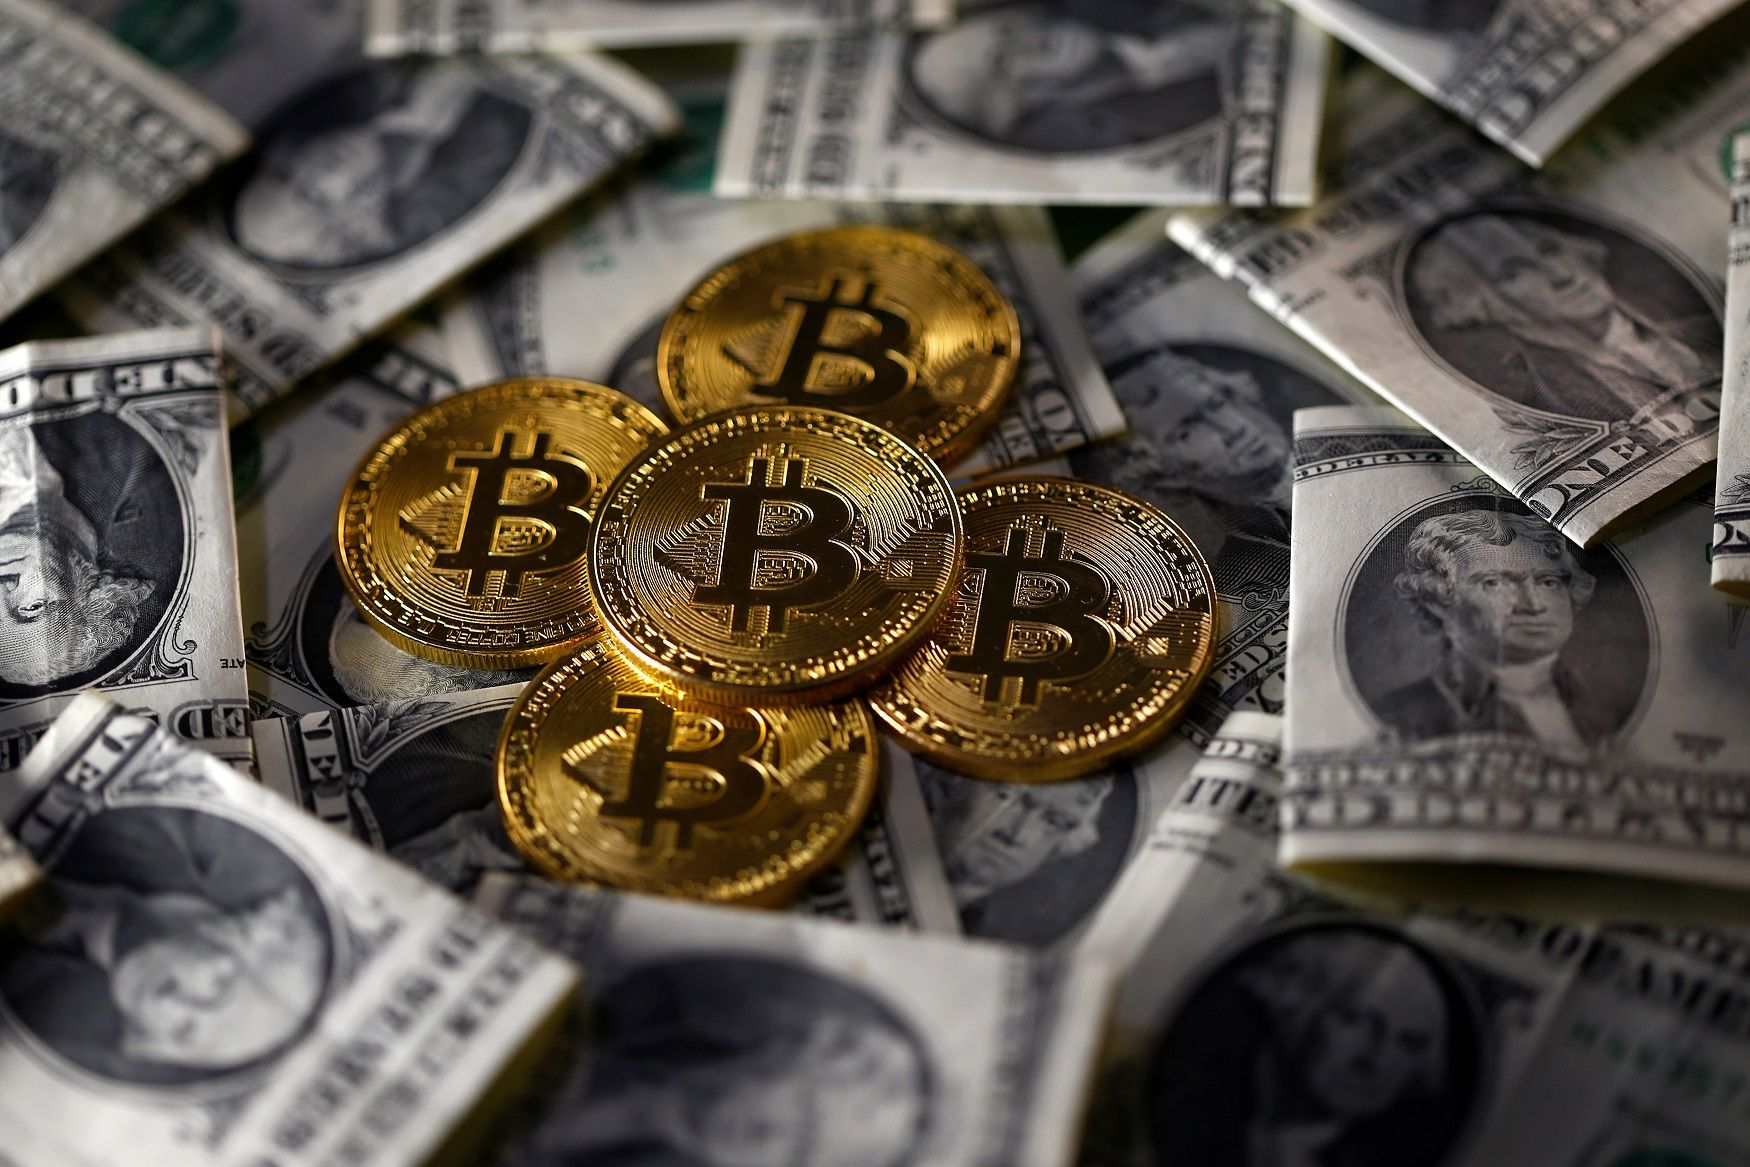 cryptocurrency ponzi scheme bitcoin lawsuit